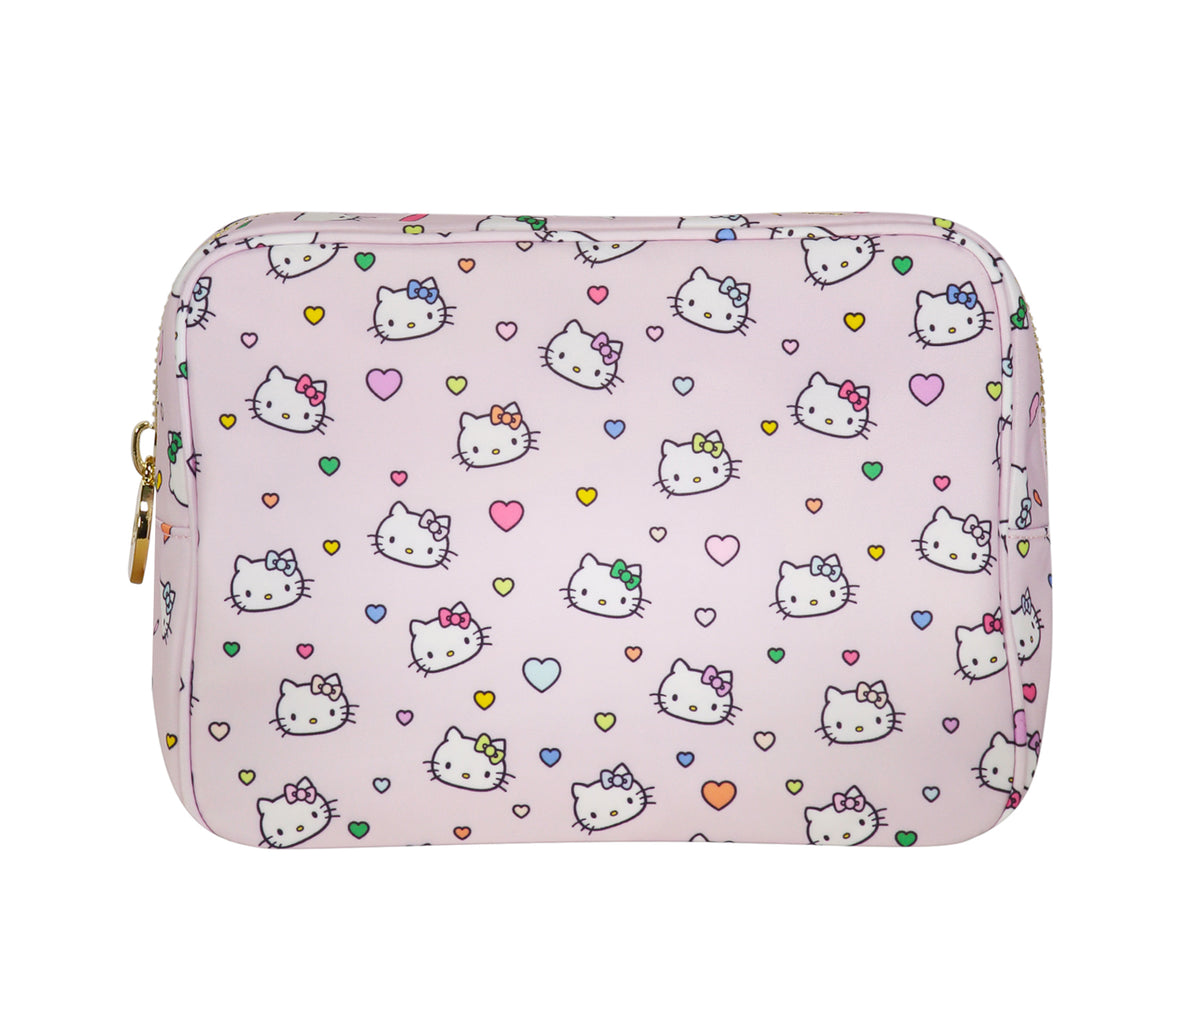 Stoney Clover Lane x Hello Kitty Hearts Large Pouch